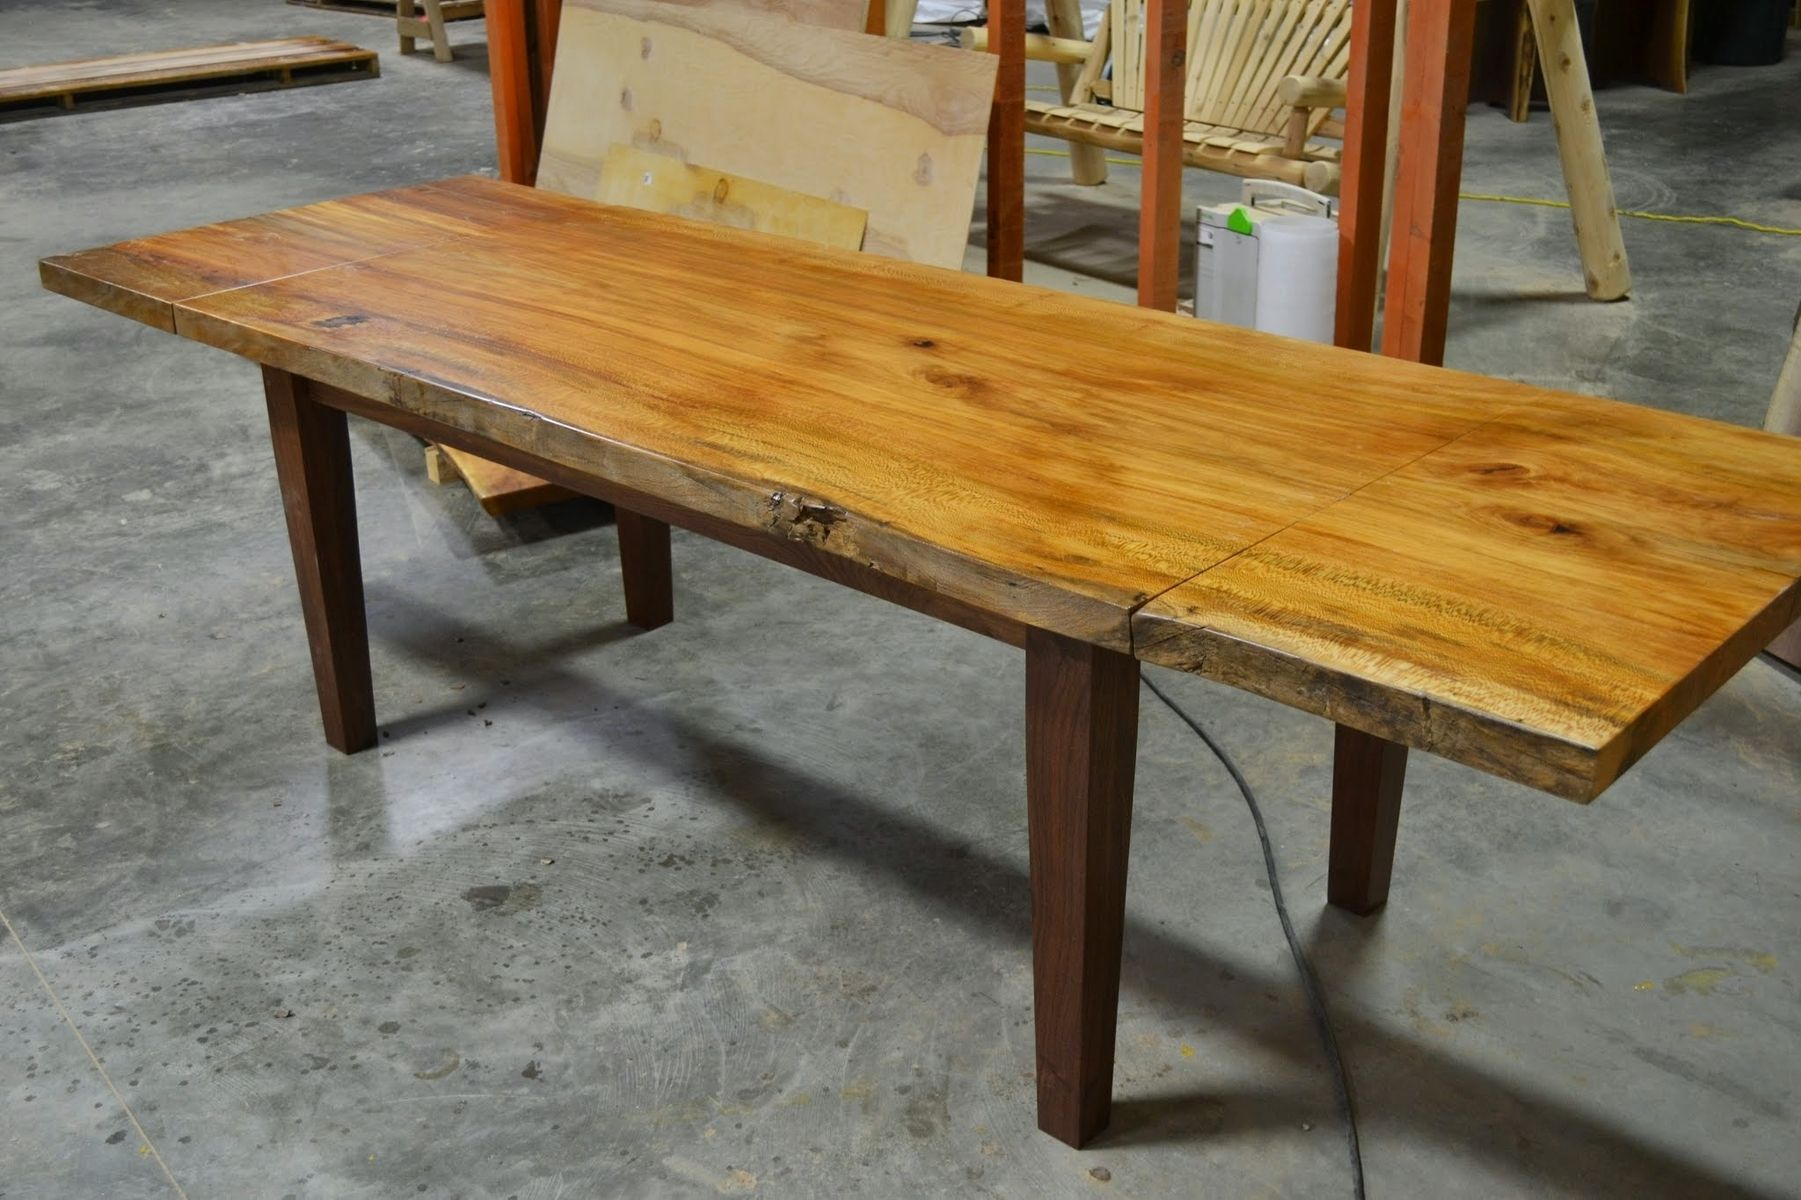 Hand Made Live Edge Slab Dining Table With Extensions by Corey